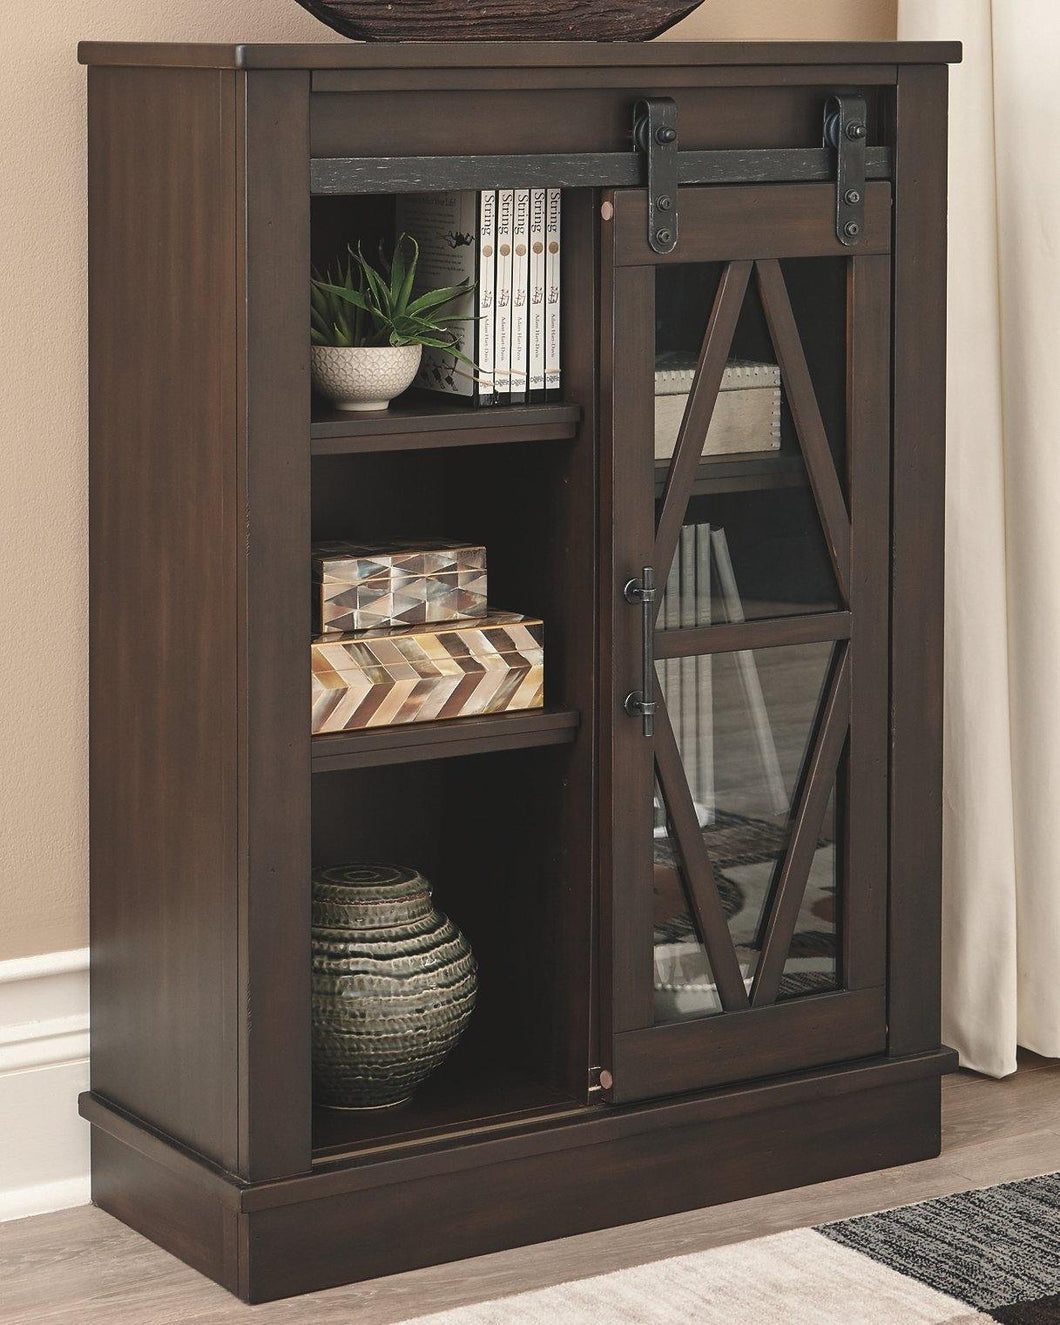 Bronfield Accent Cabinet A4000135 By Ashley Furniture from sofafair